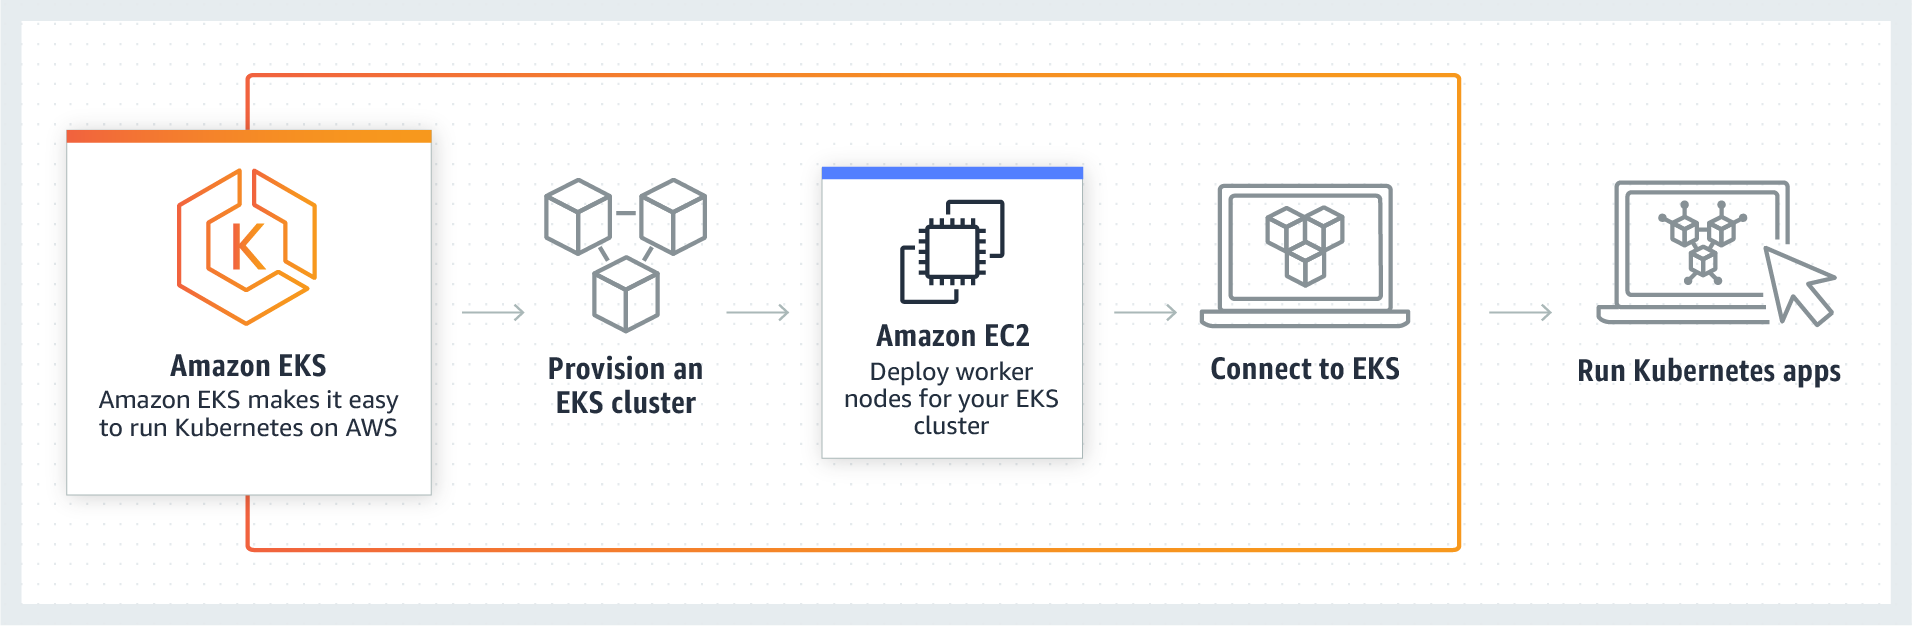 Amazon EKS - Managed Kubernetes Service